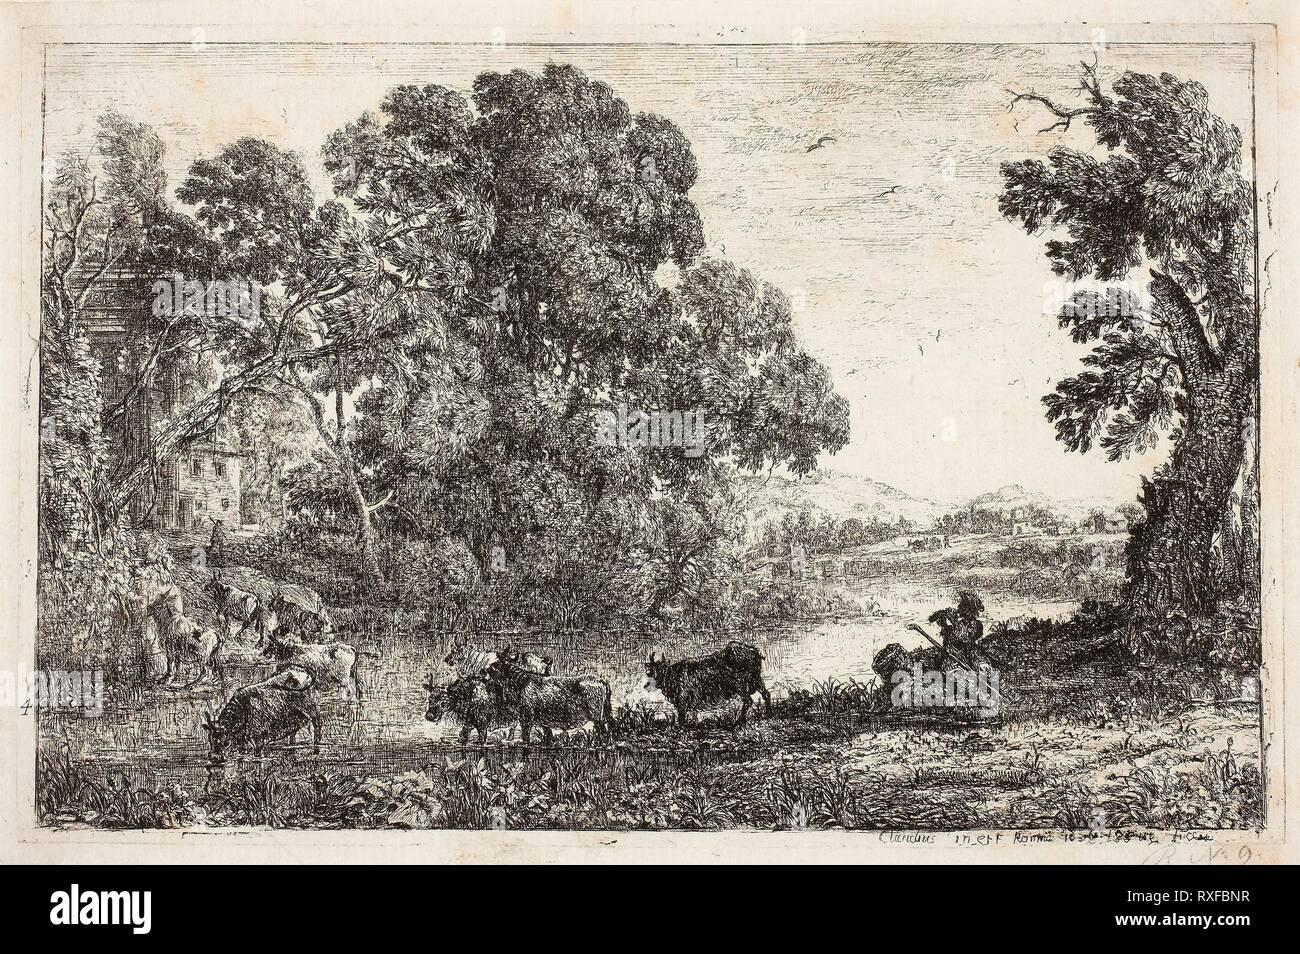 The Cowherd. Claude Lorrain; French, 1600-1682. Date: 1636. Dimensions: 125 × 194 mm (image); 130 × 120 mm (plate); 139 × 209 mm (sheet). Etching on ivory laid paper. Origin: France. Museum: The Chicago Art Institute. - Stock Image